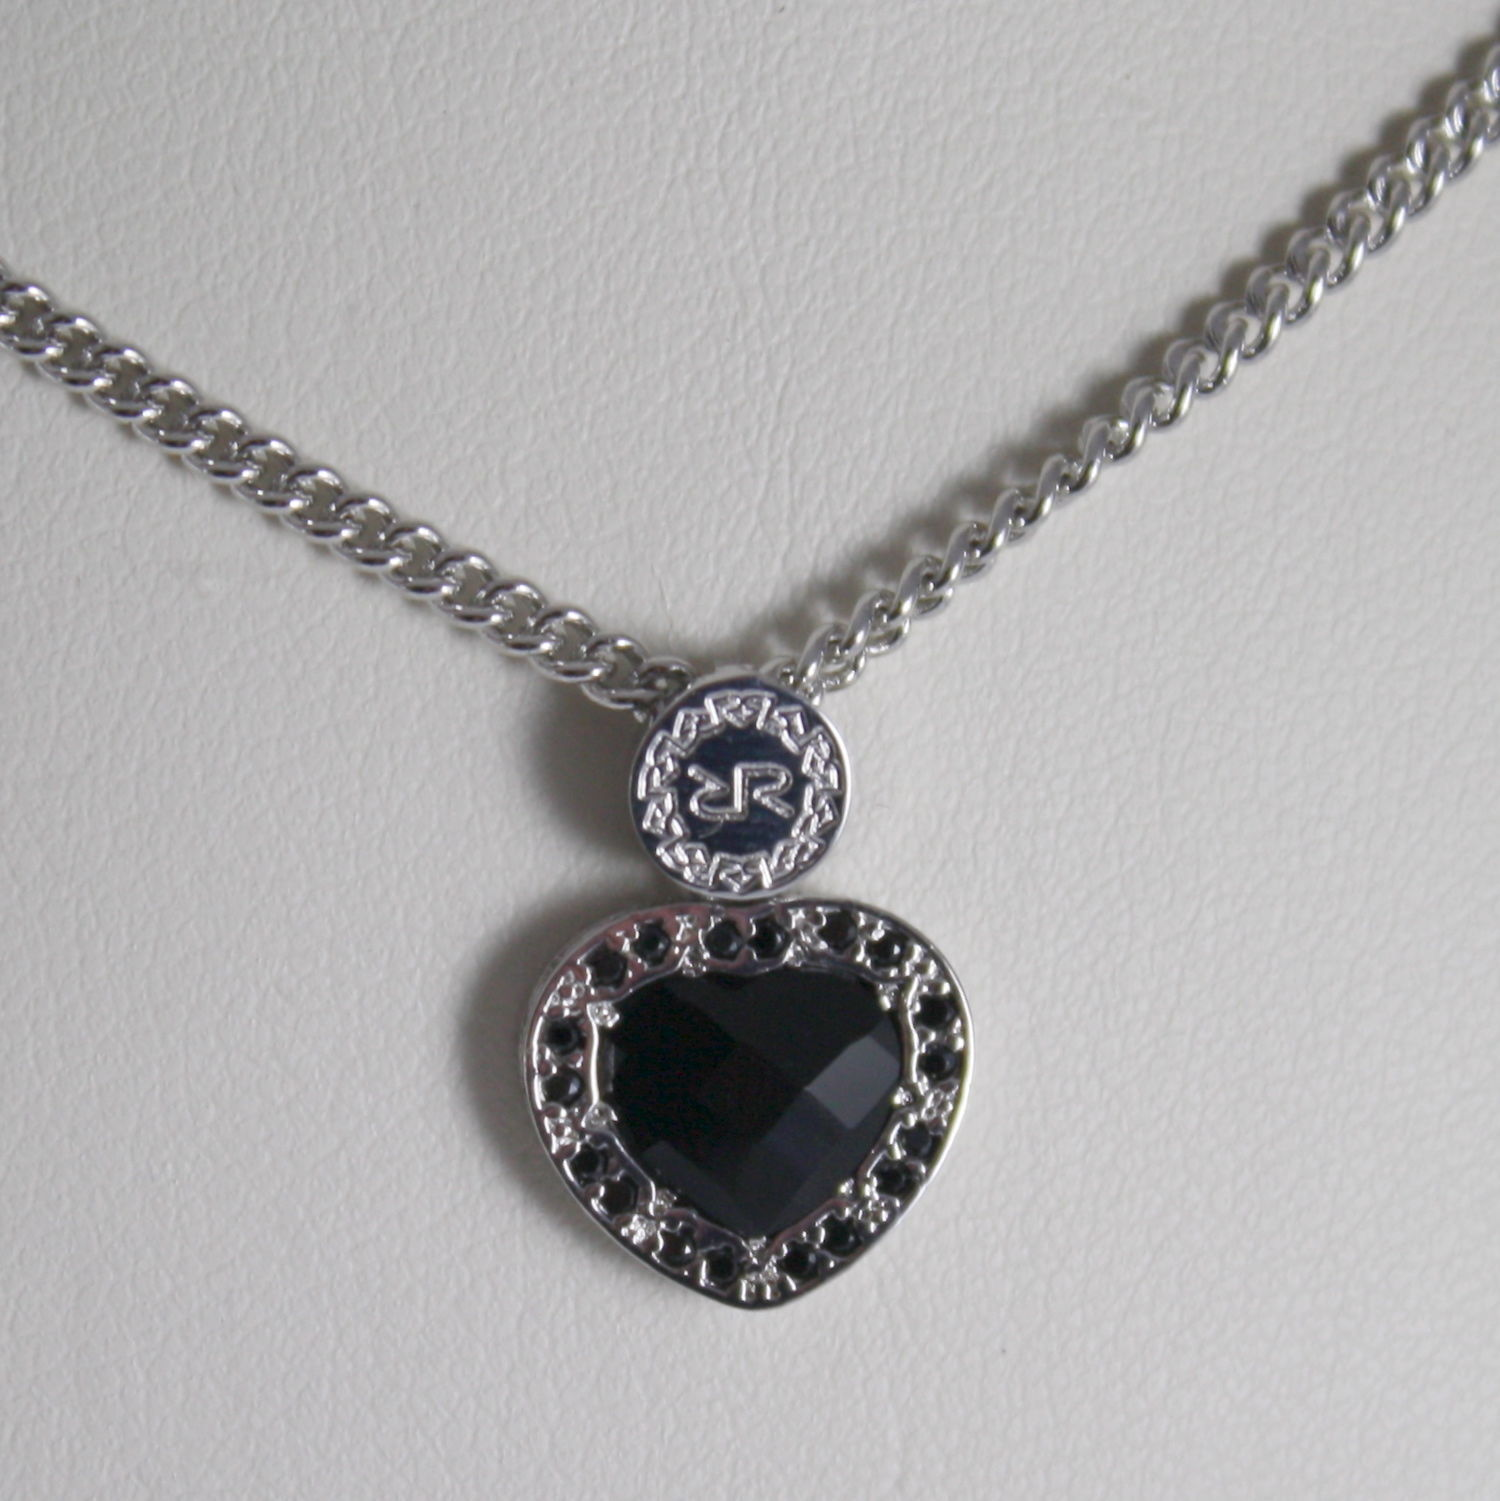 RHODIUM BRONZE NECKLACE WITH HEART B14KBN24 BLACK ZIRCONIA REBECCA MADE IN ITAL